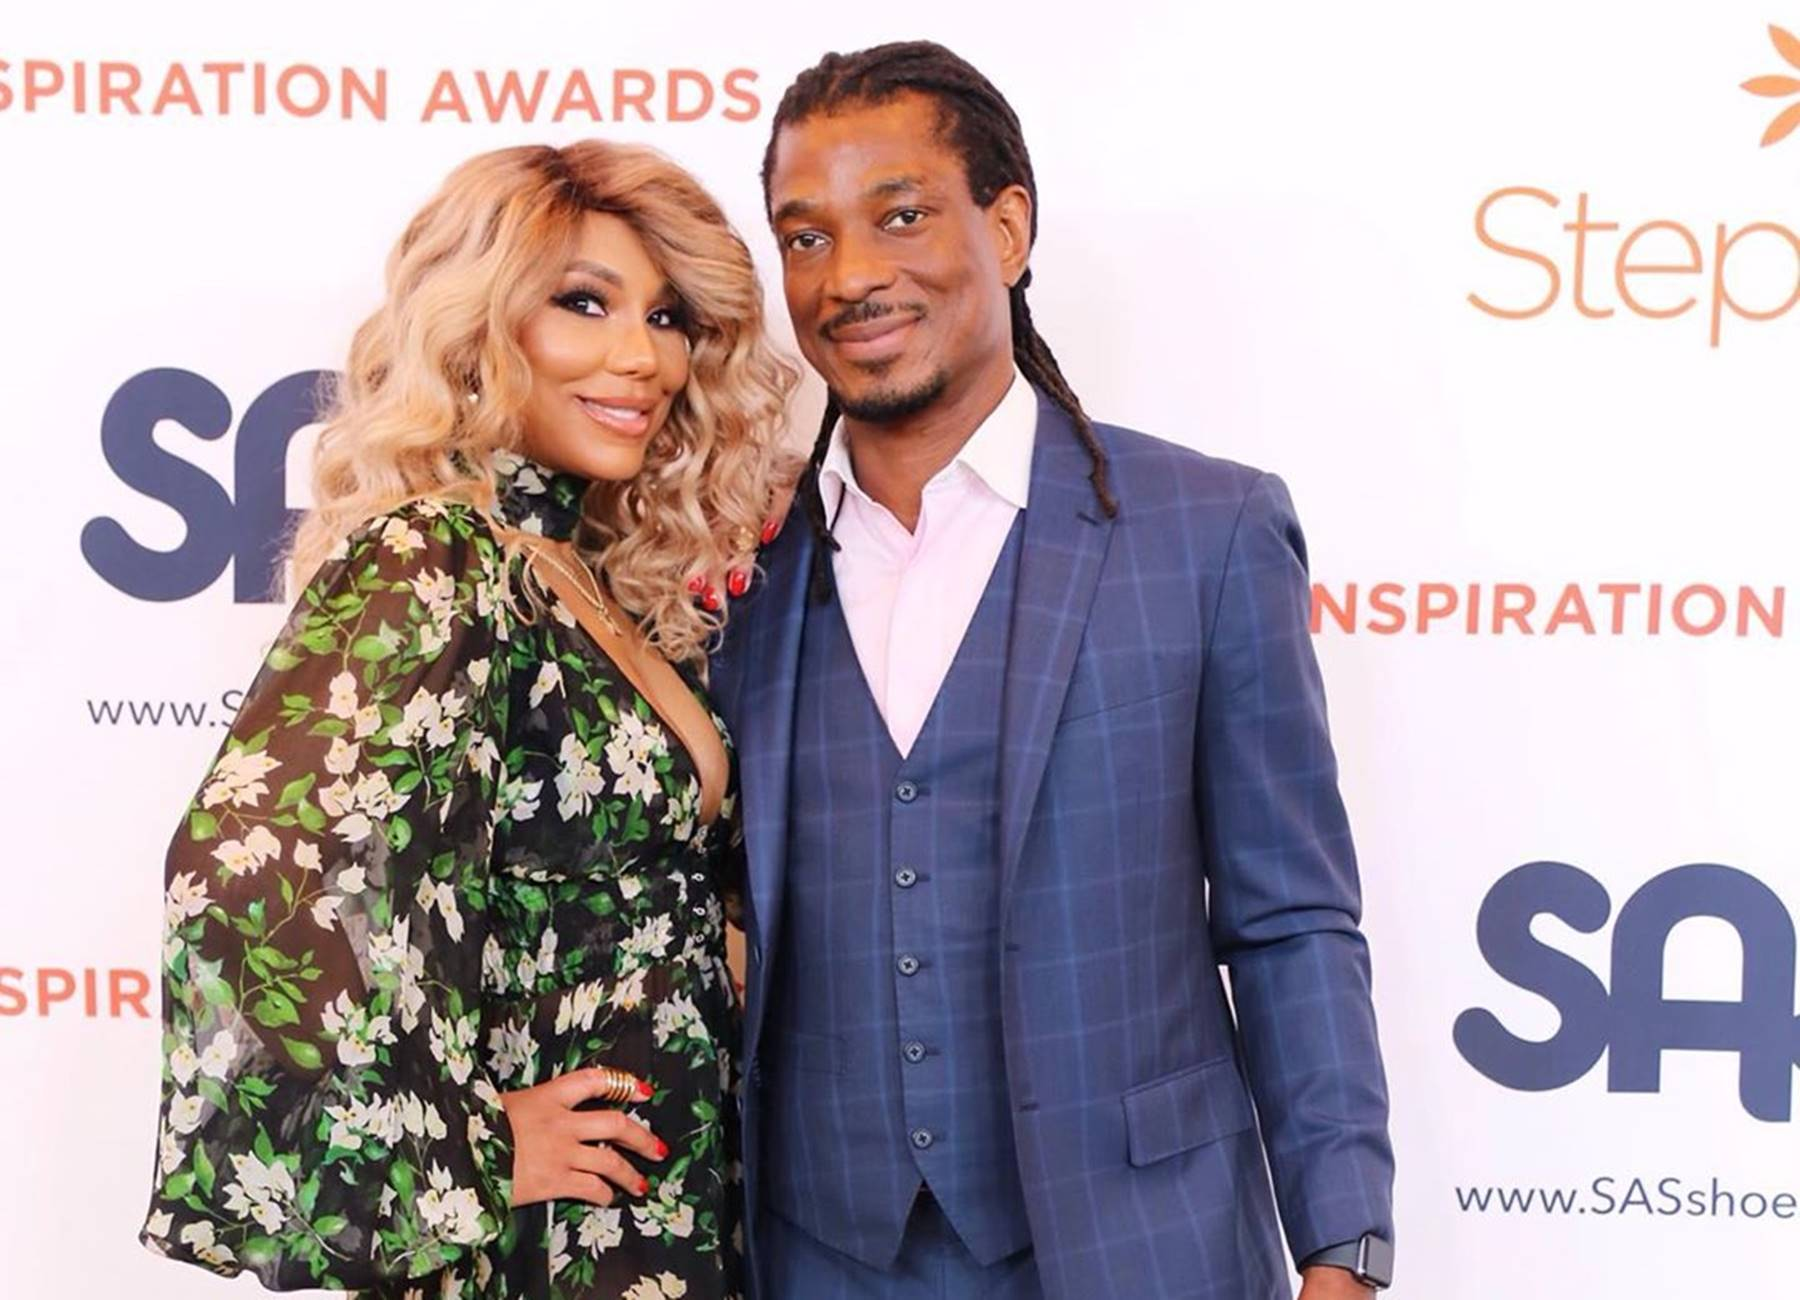 """tamar-braxton-shares-romantic-videos-hinting-david-adefeso-proposed-nigerian-businessman-went-all-out-for-his-lady-love"""